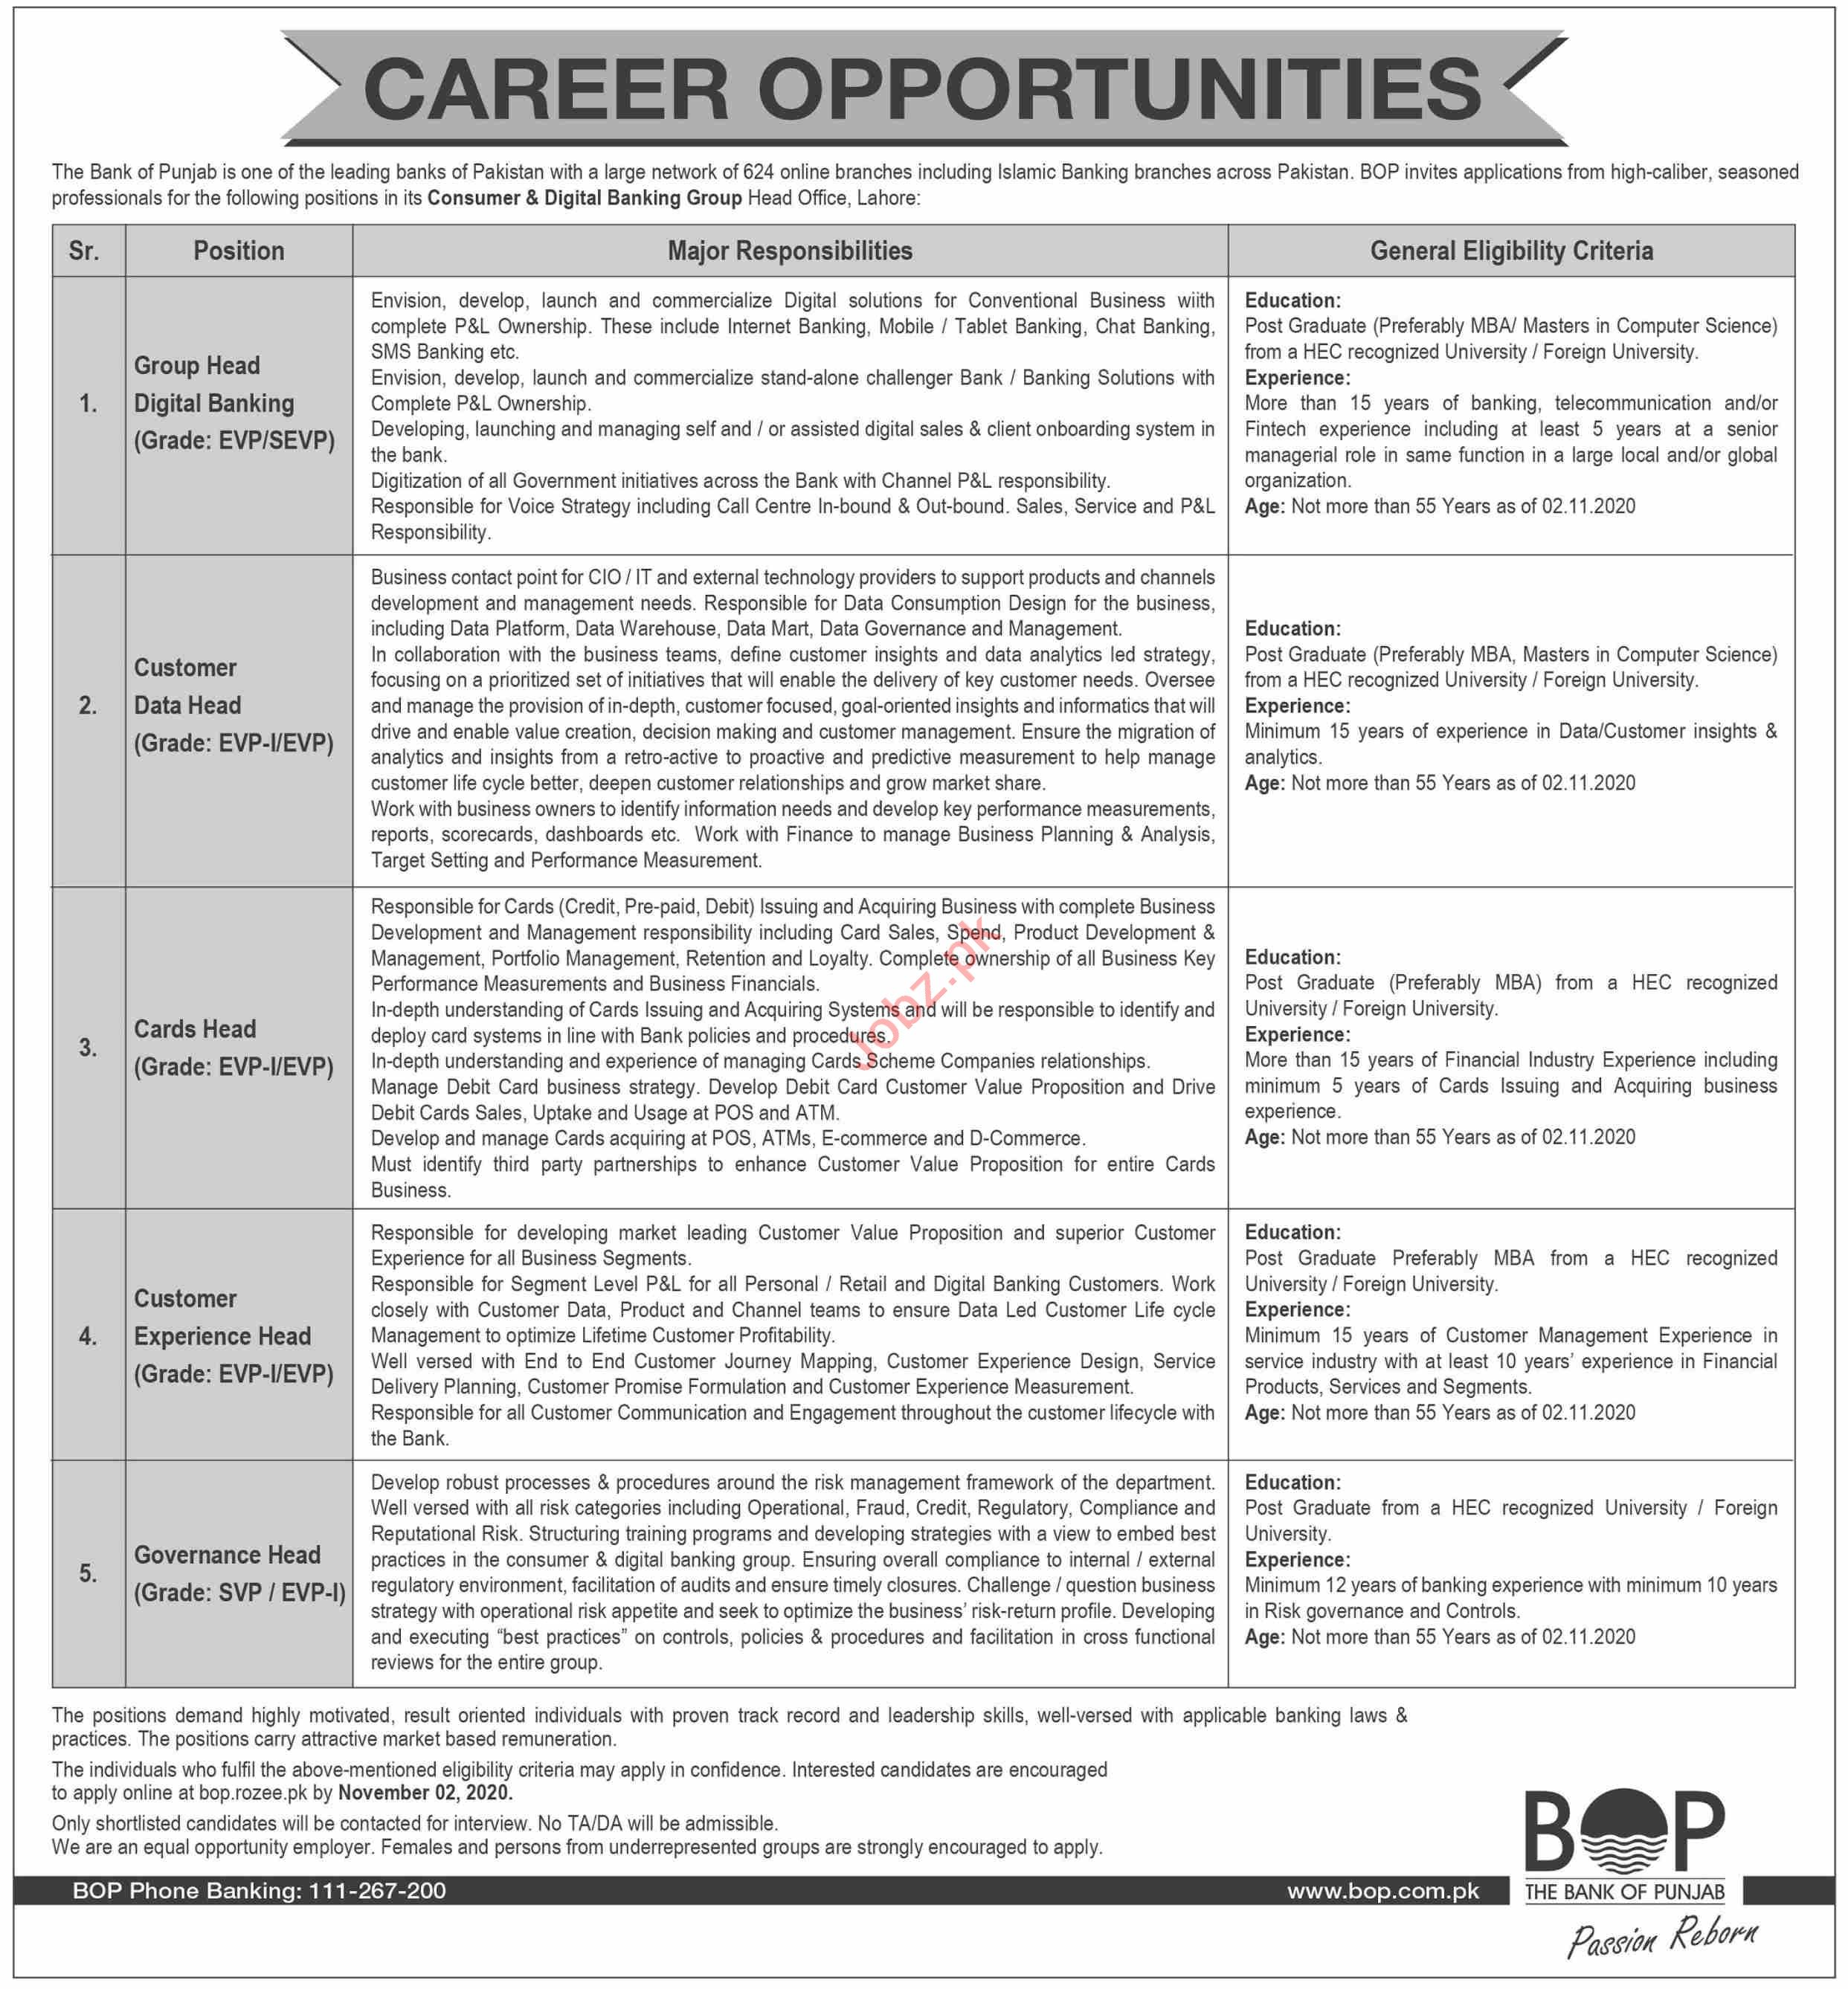 Bank of Punjab BOK Jobs 2020 for Group Head & Cards Head